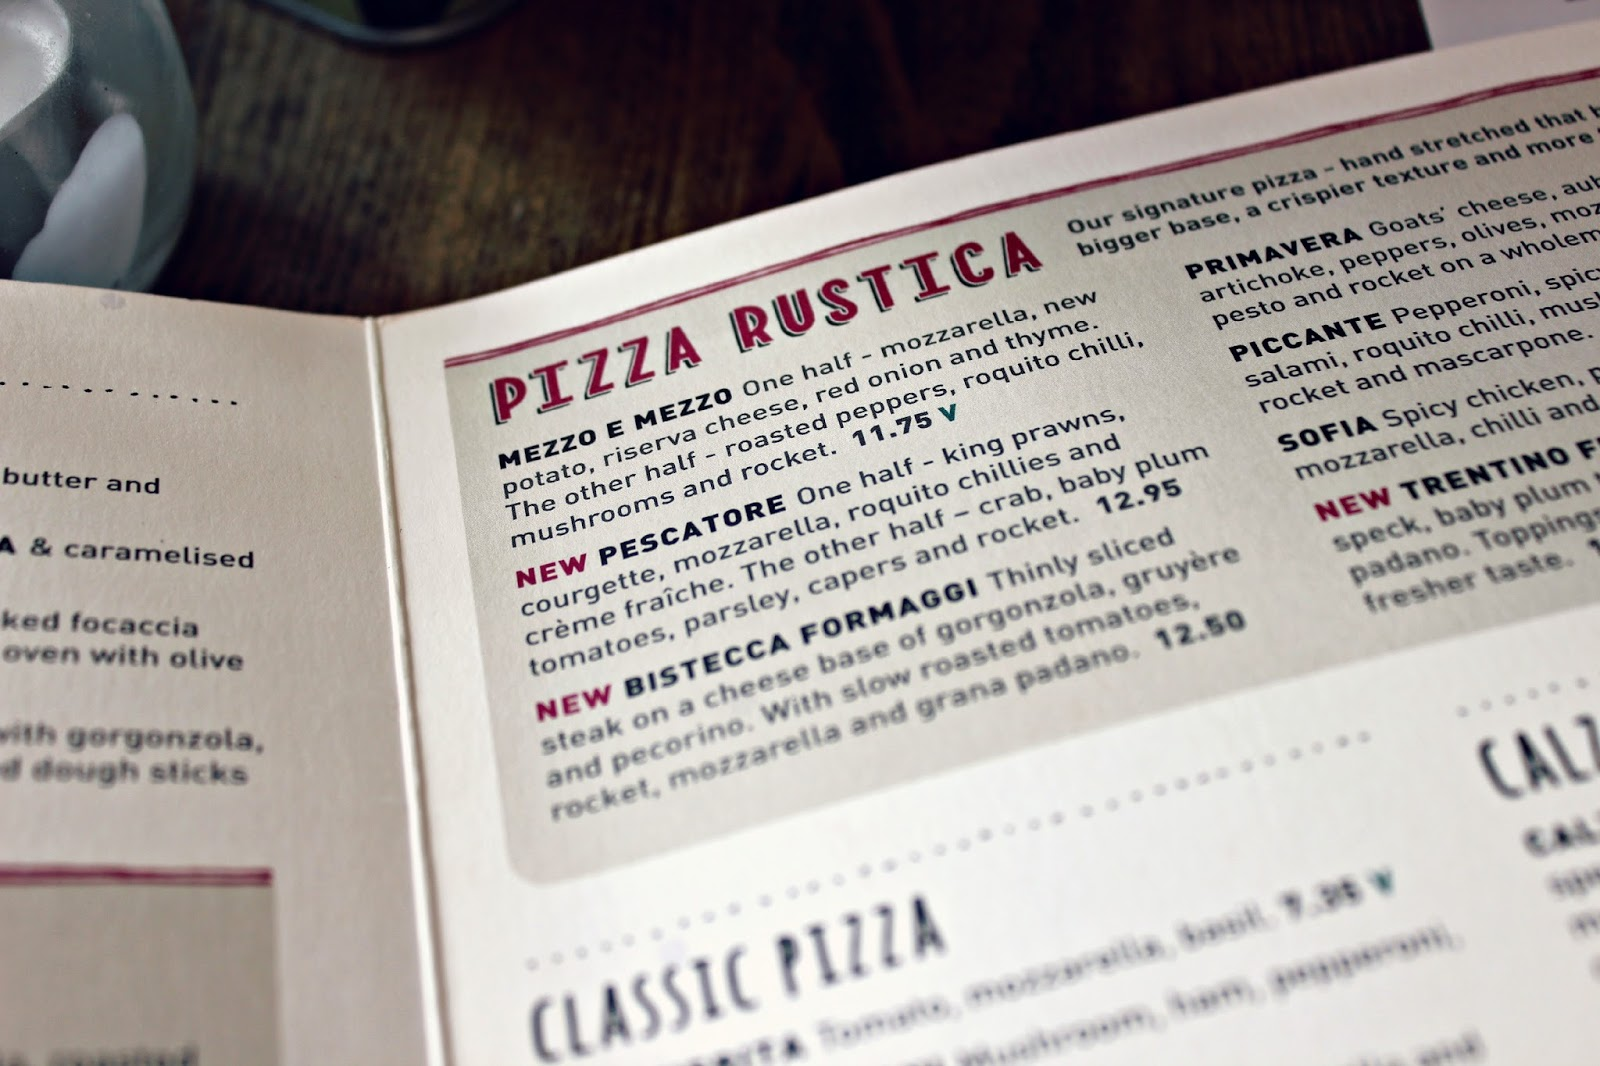 Zizzi's New Spring Menu | Review - Real Housewife of Suffolk